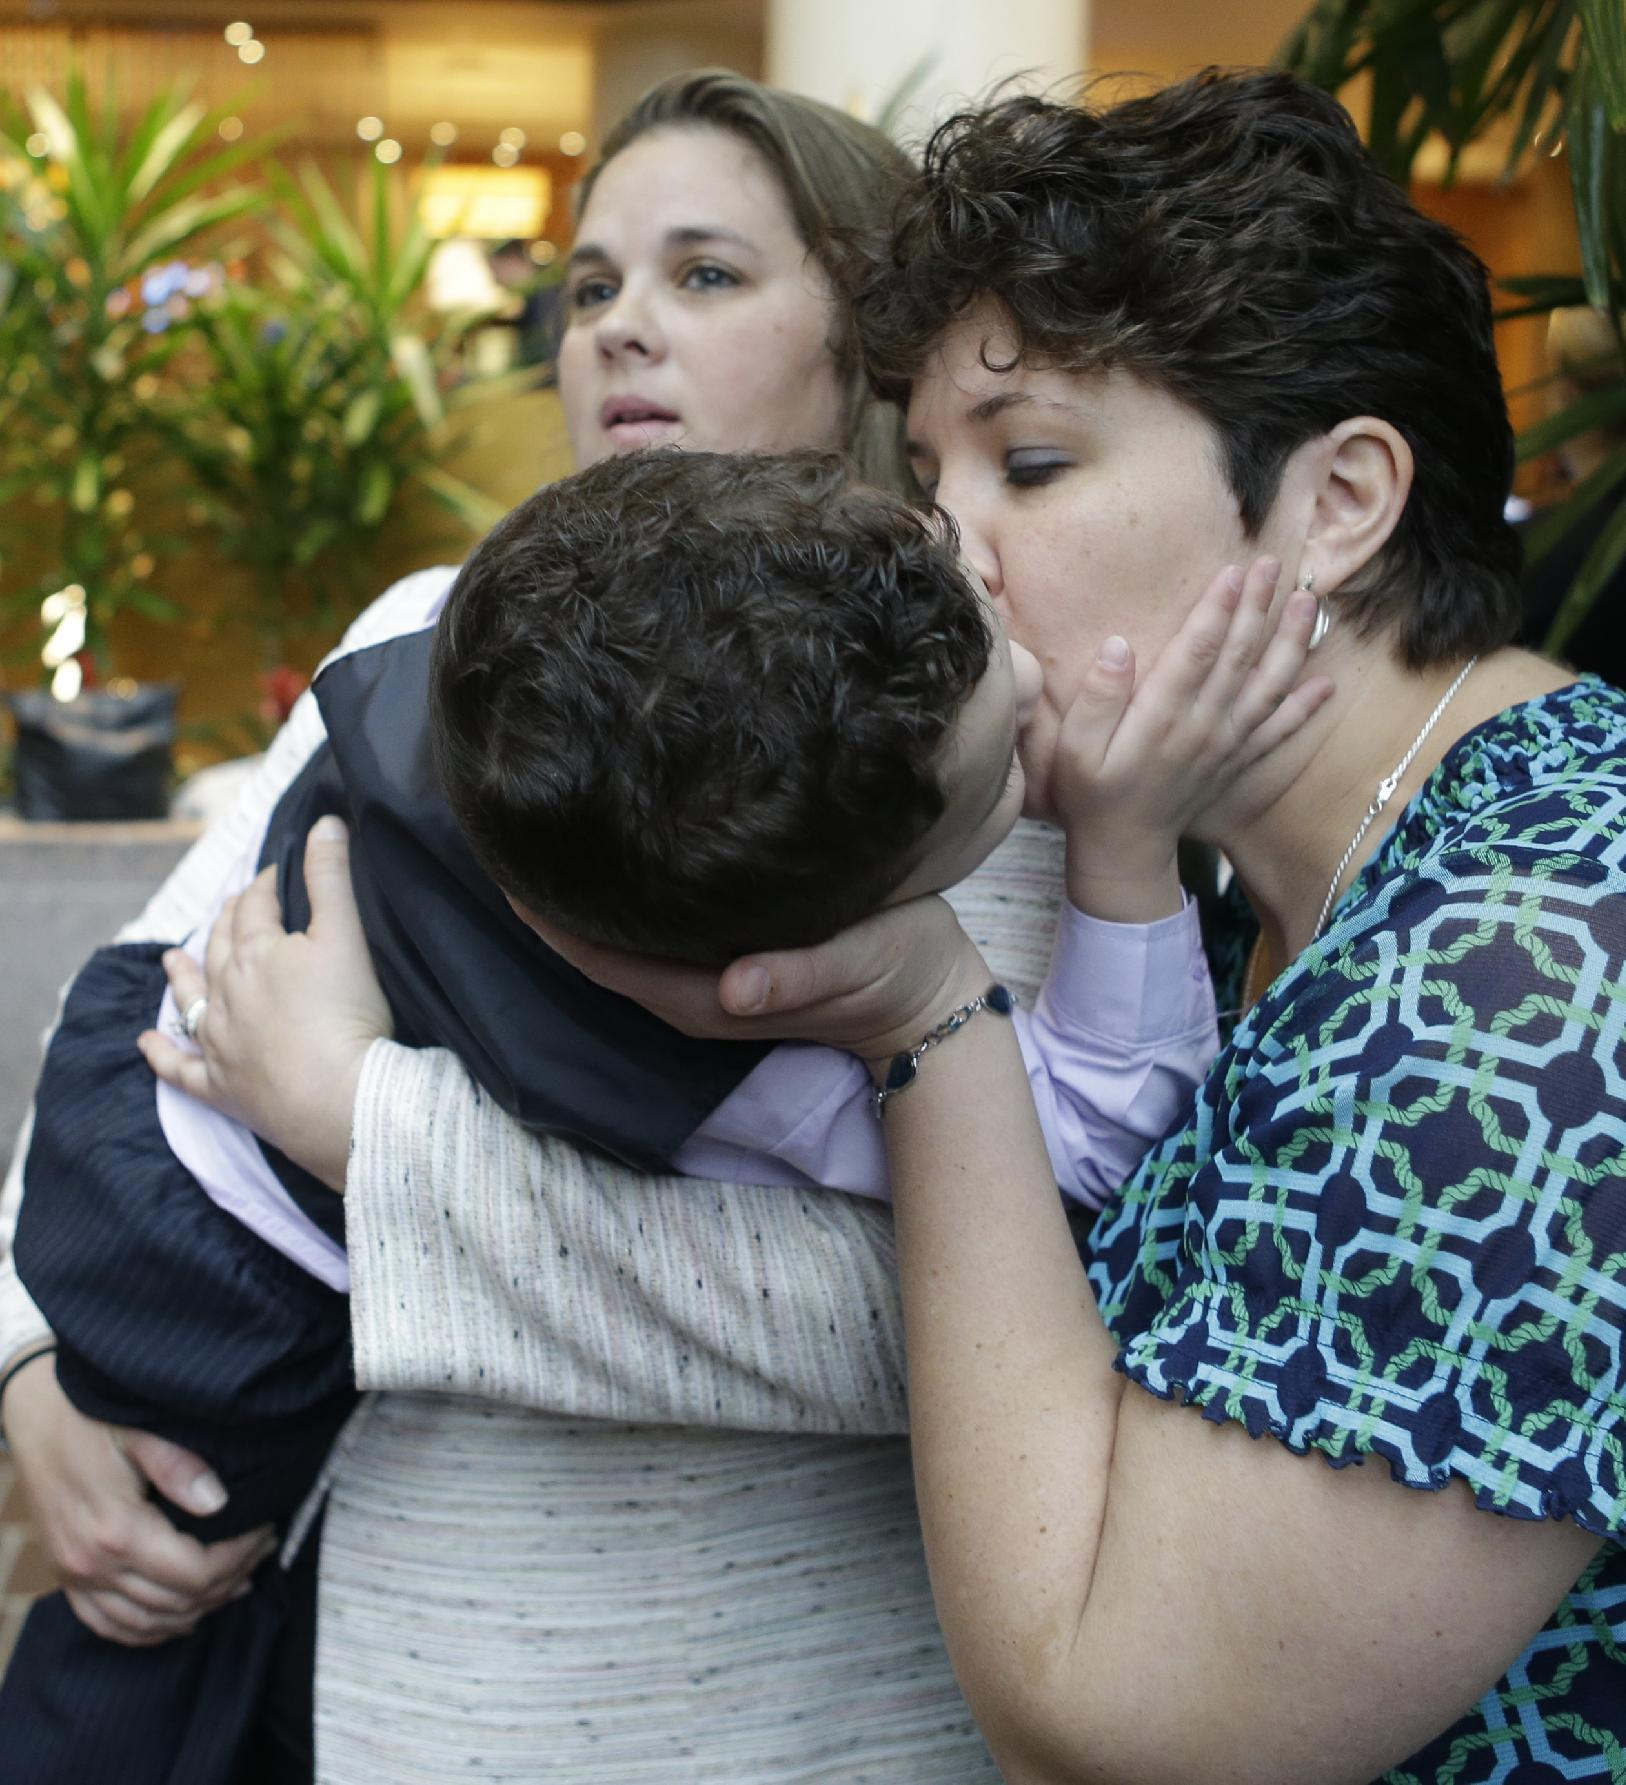 Some Gay Marriage Opponents Balk, While Couples Rush To Wed